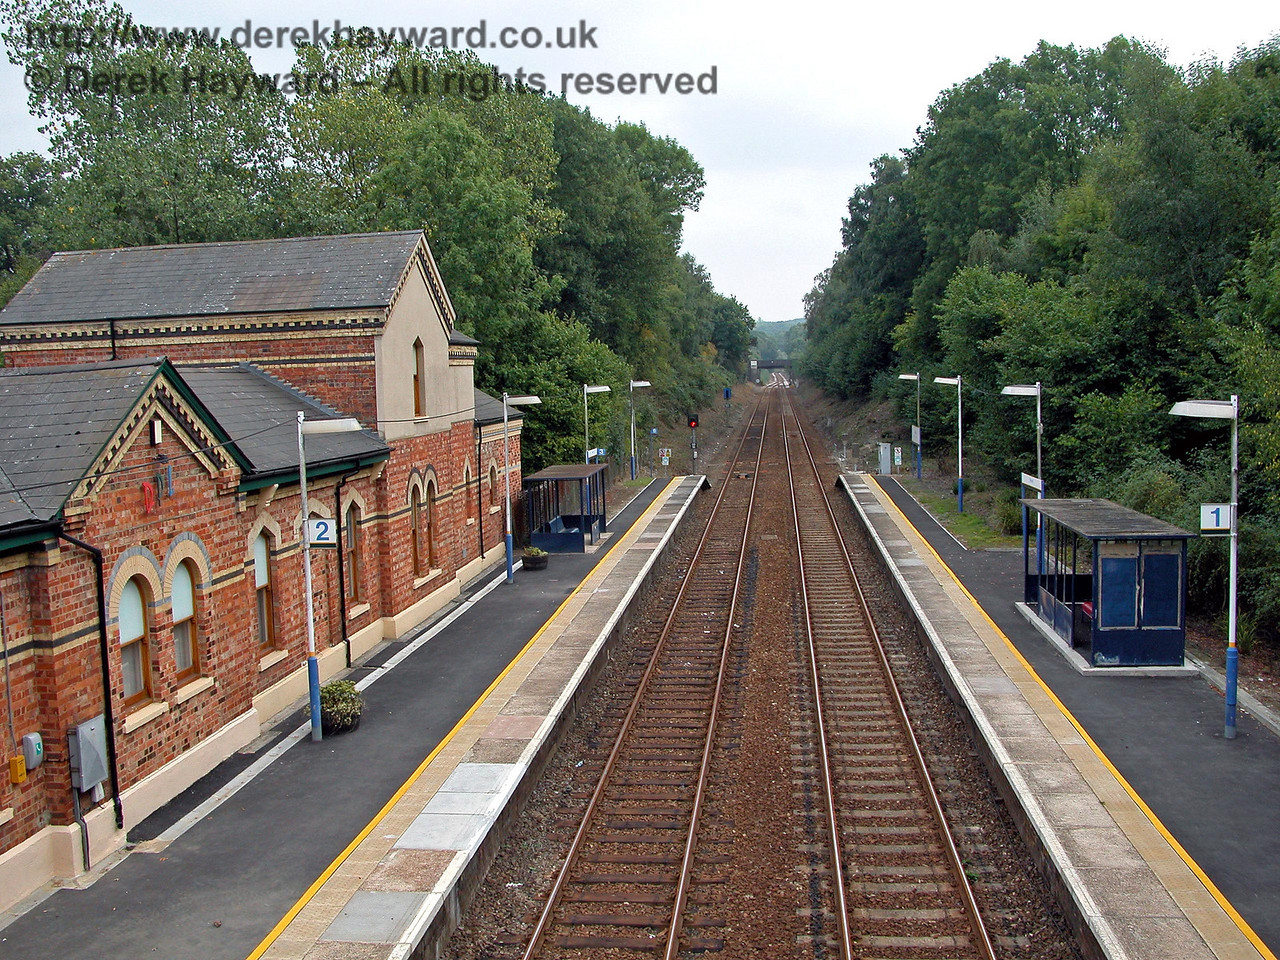 A view south from Hever taken from the station footbridge before the lamps and shelters were repainted. 18.09.2003